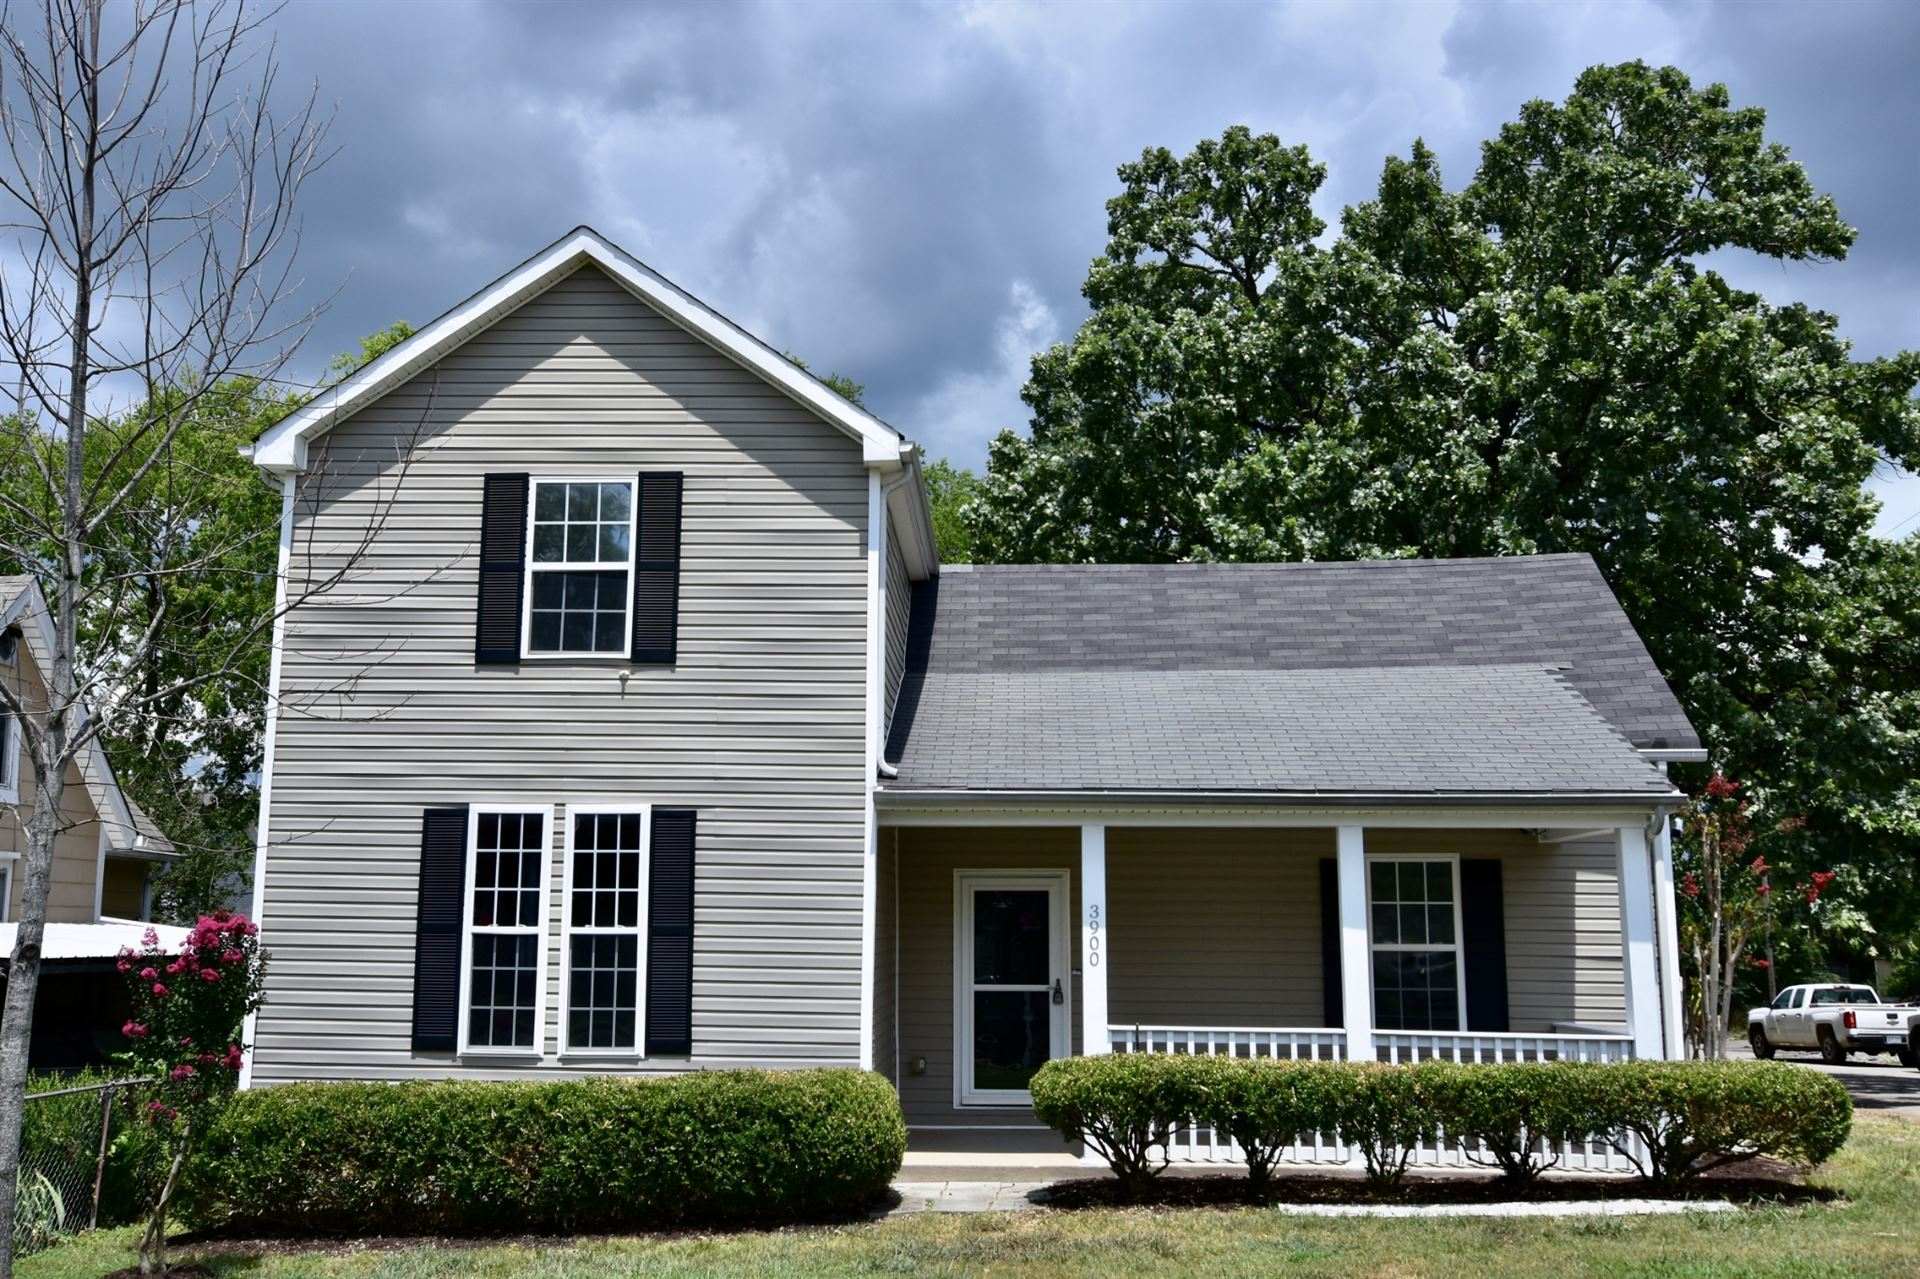 3900 Elkins Ave, Nashville, TN 37209 - MLS#: 2173306